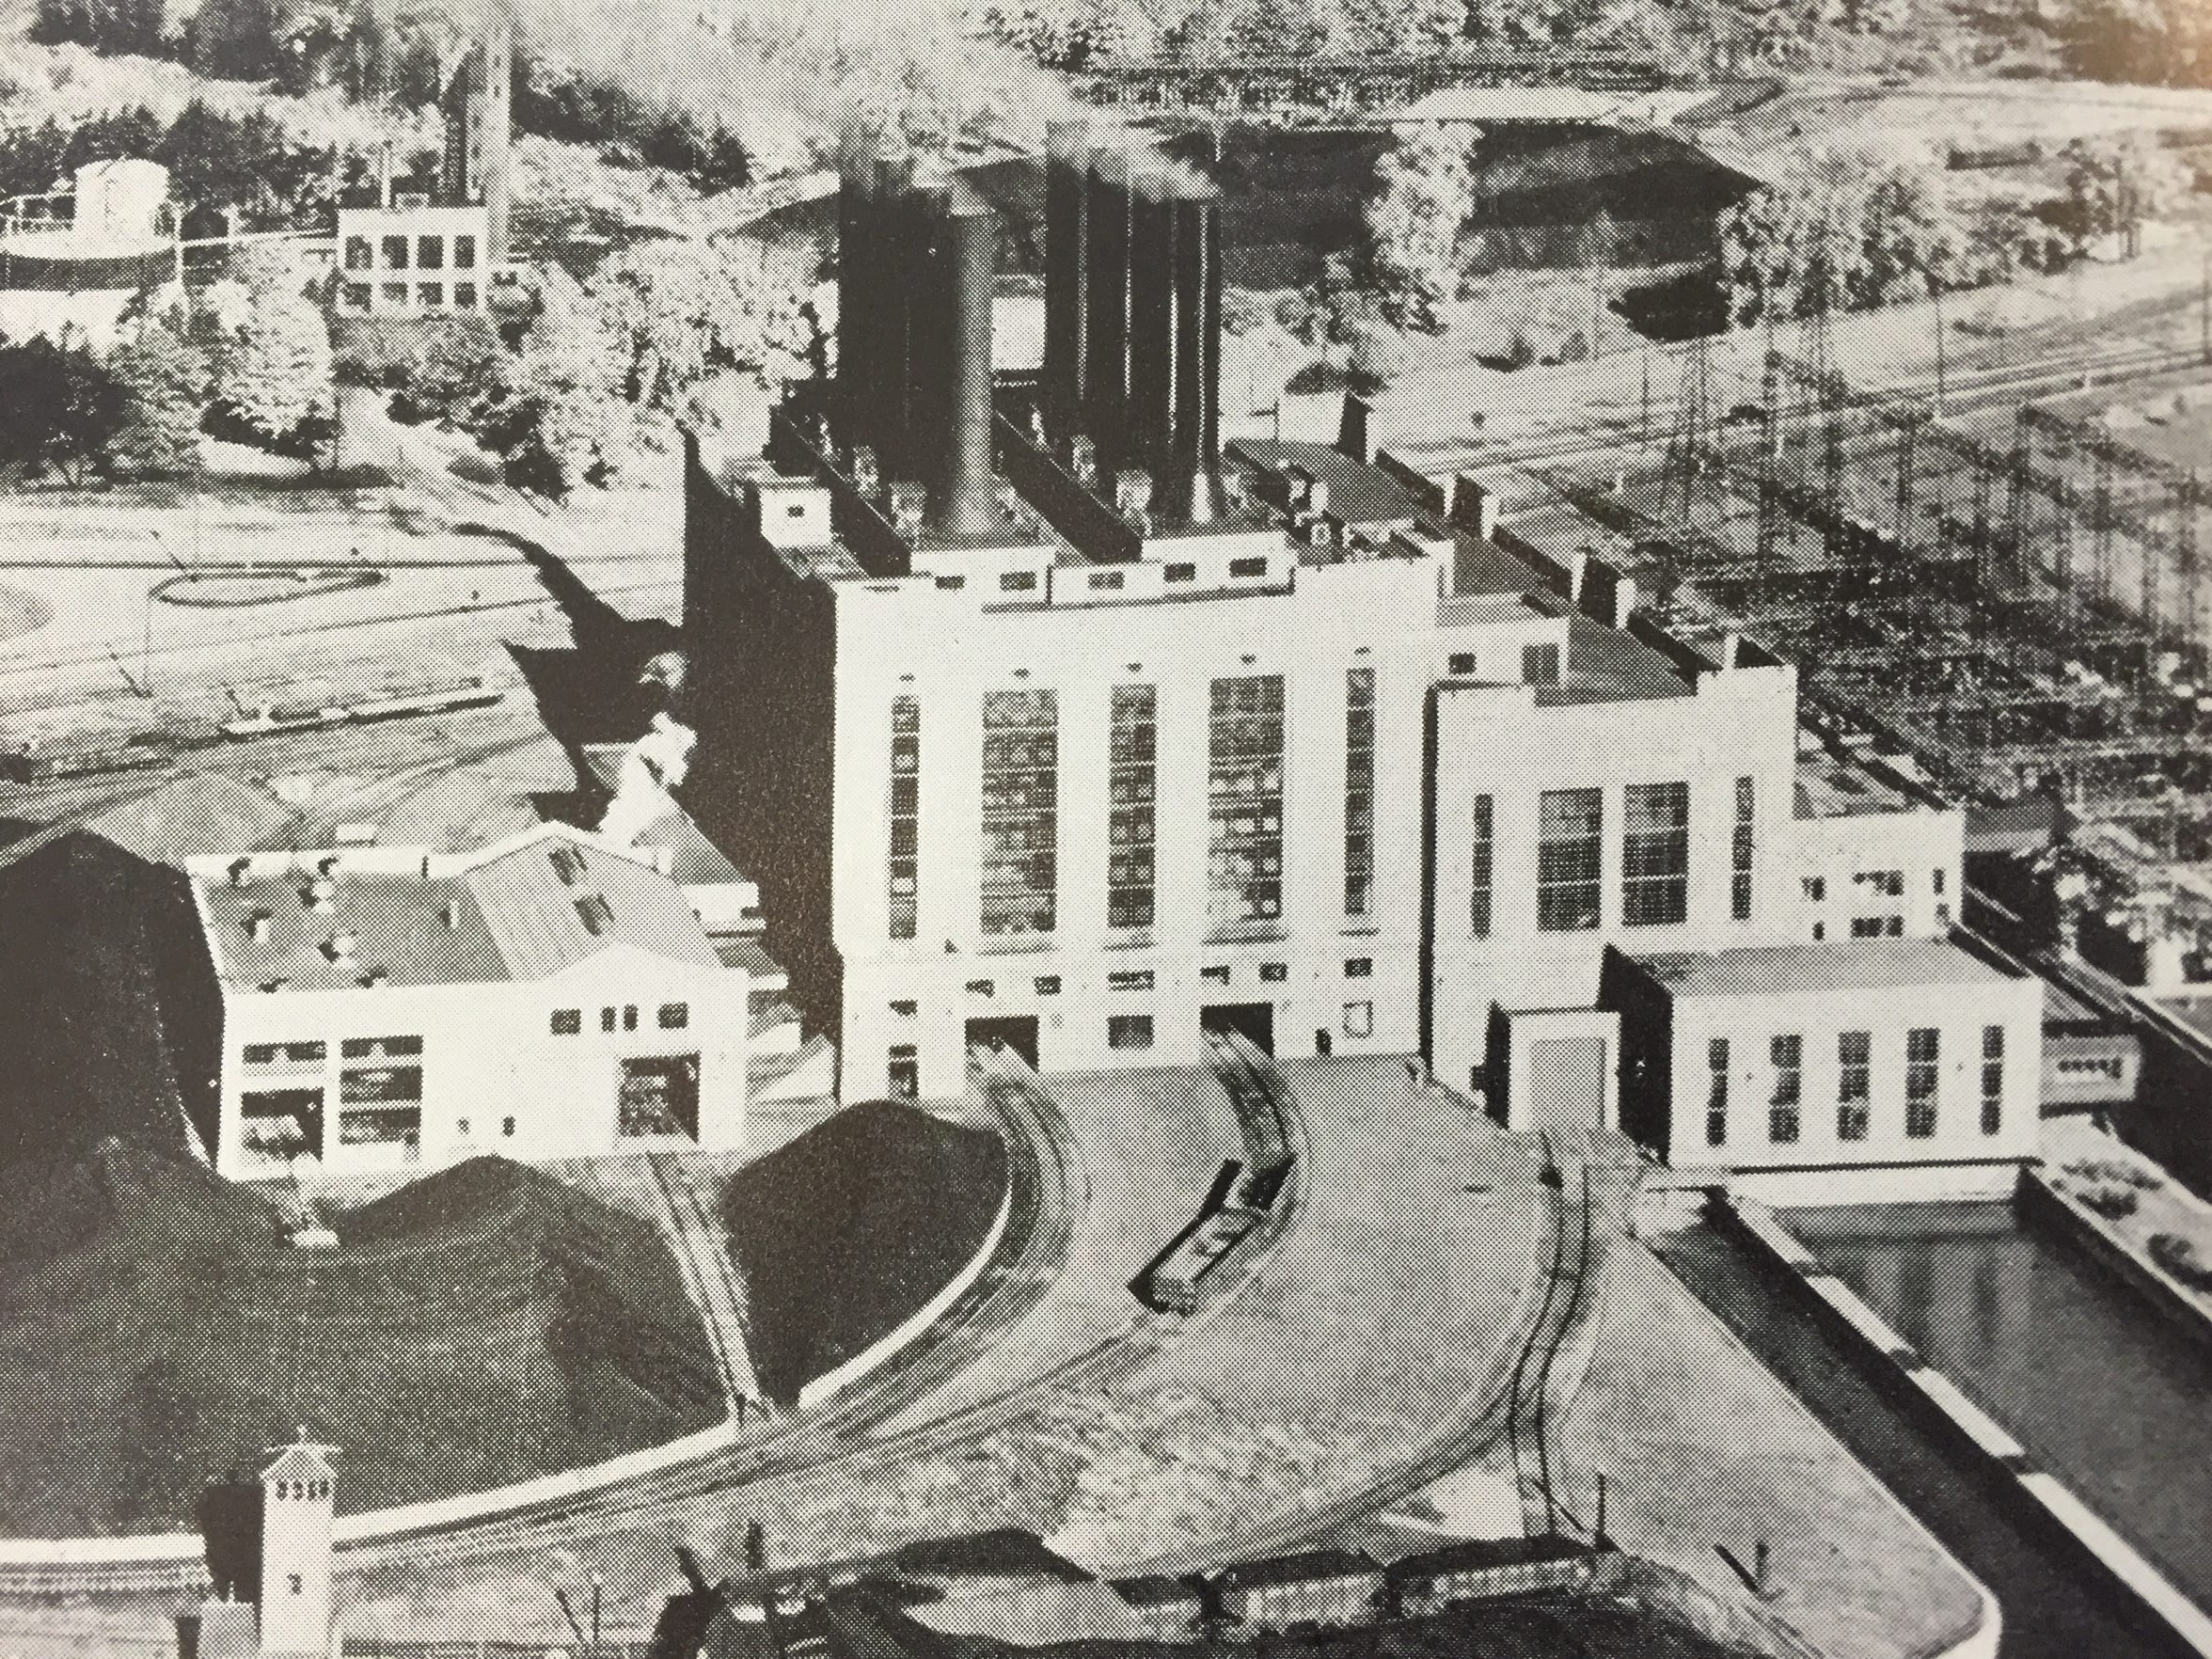 A historic photo of the Mighty Marysville power plant.